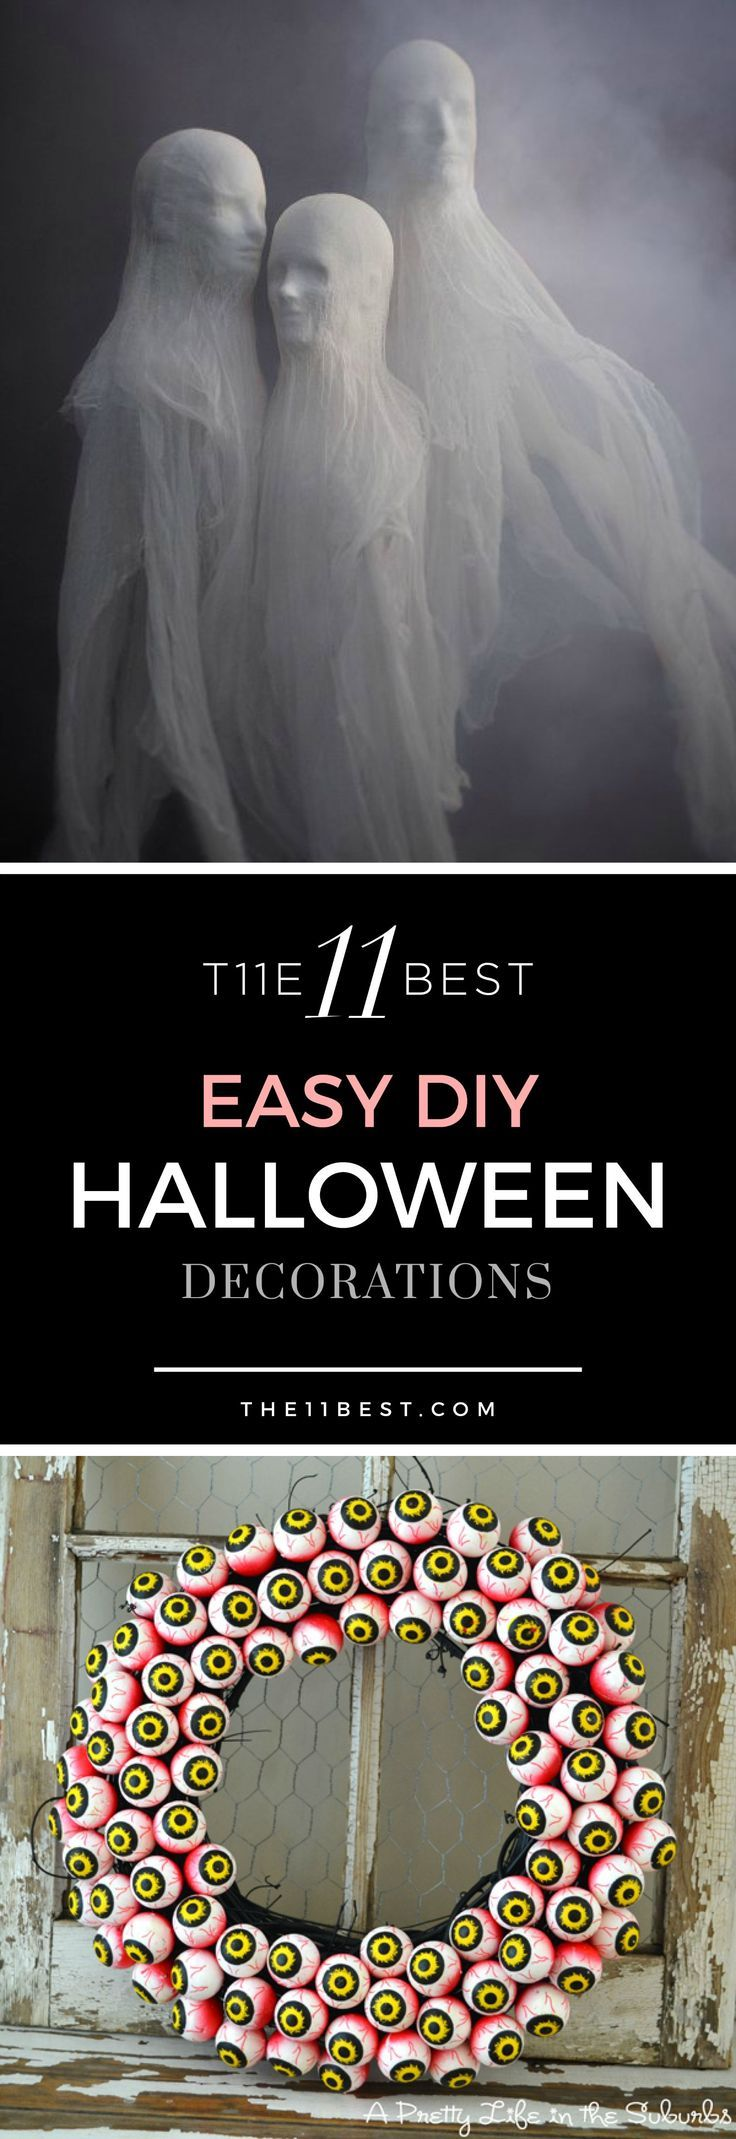 The 11 Best EASY DIY Halloween Decorations - Find supplies at Goodwill, your Halloween Headquarters! www.goodwillvalleys.com/shop/ #halloweendecorations